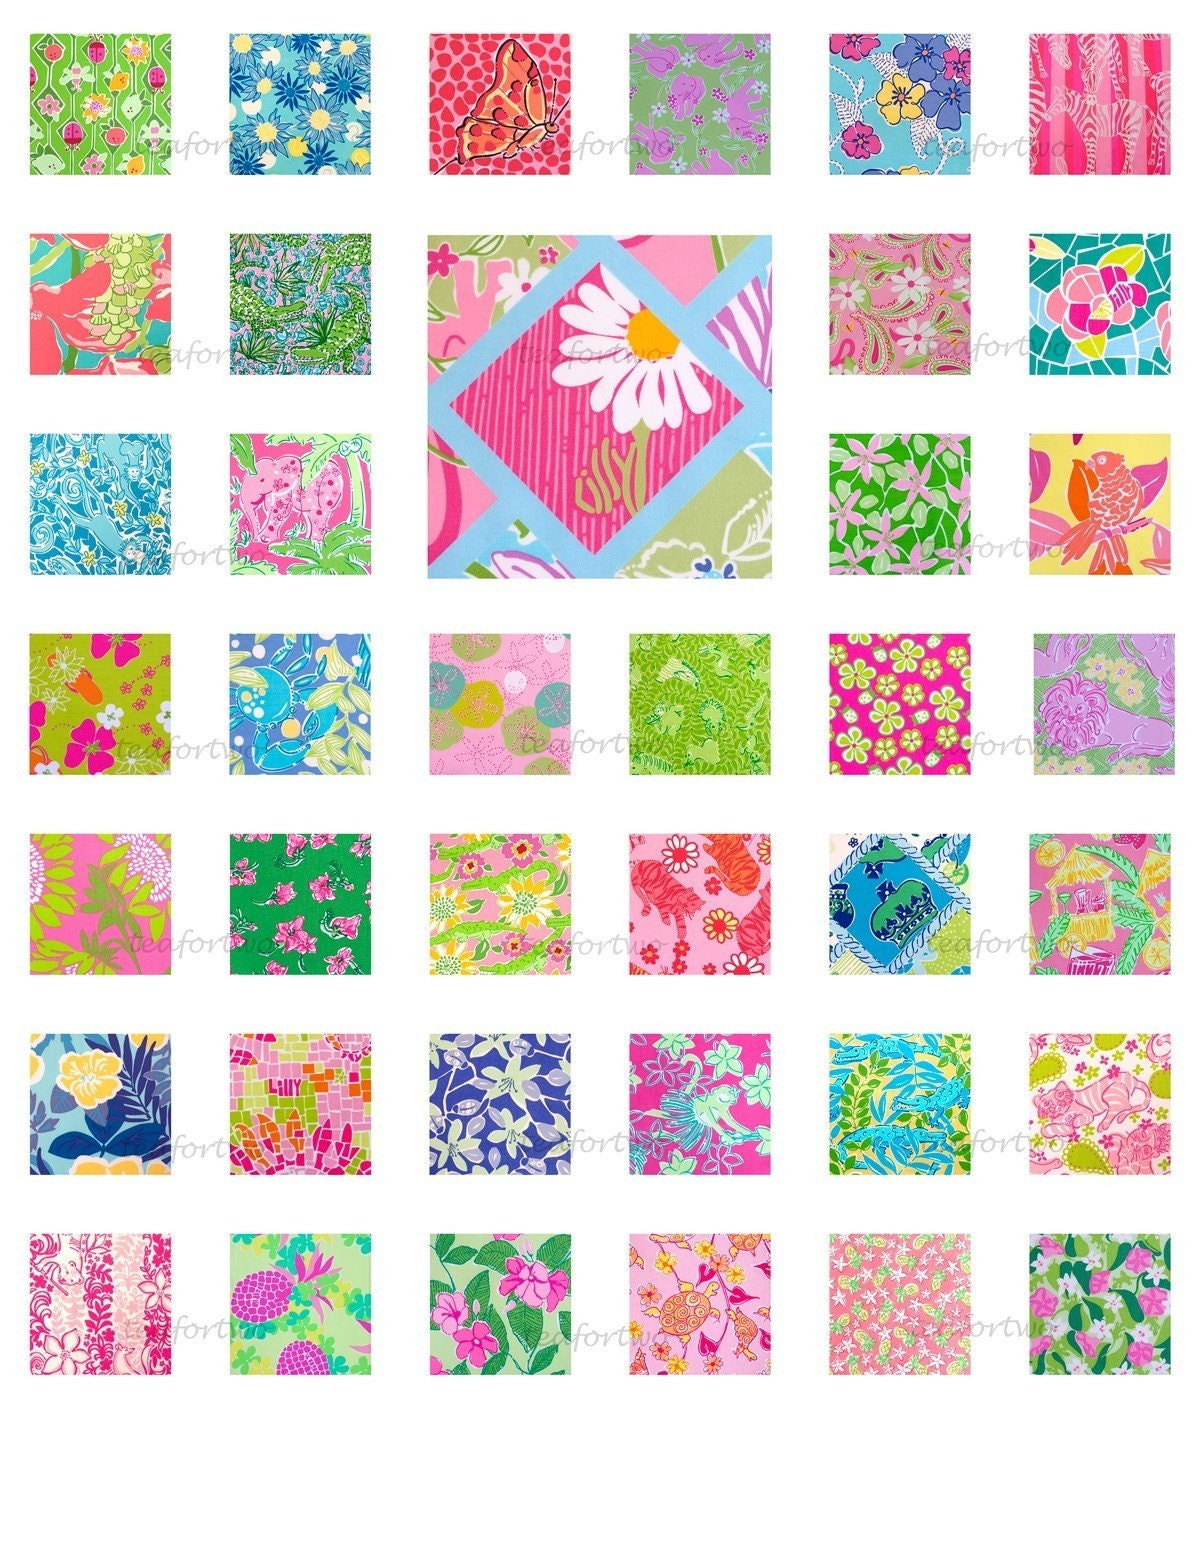 Lilly pulitzer digital tile prints by teafortwo on etsy